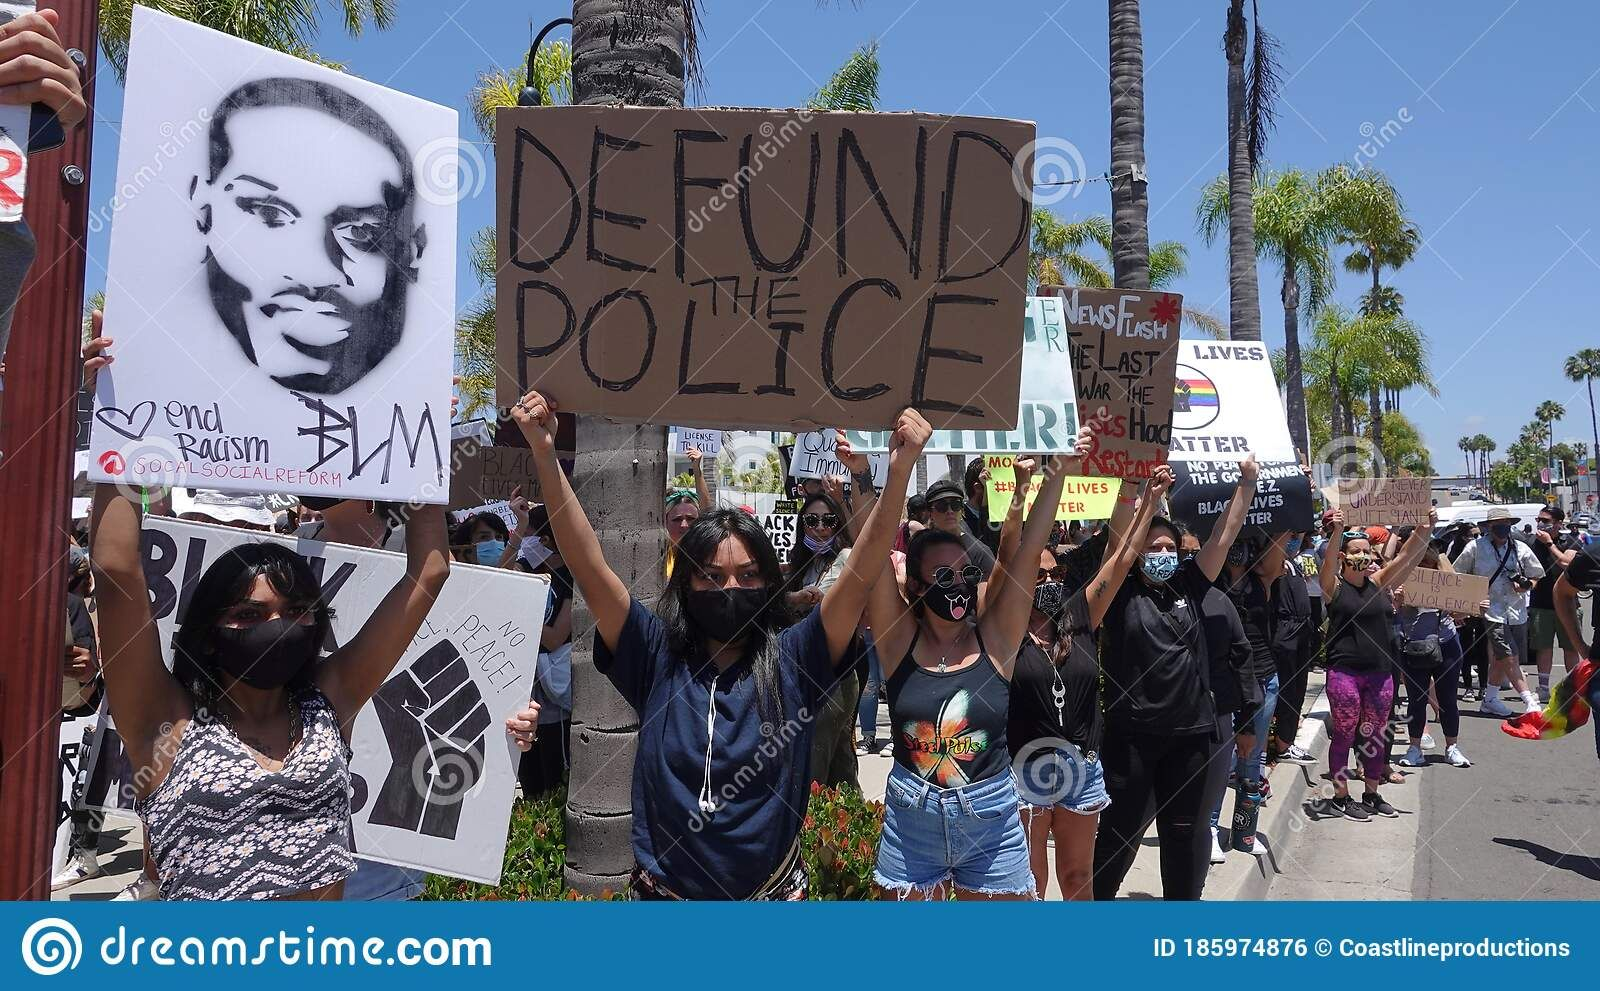 Pin By Dreamstime Stock Photos On Black Lives Matter Black Lives Matter Protest Black Lives Matter Black Lives